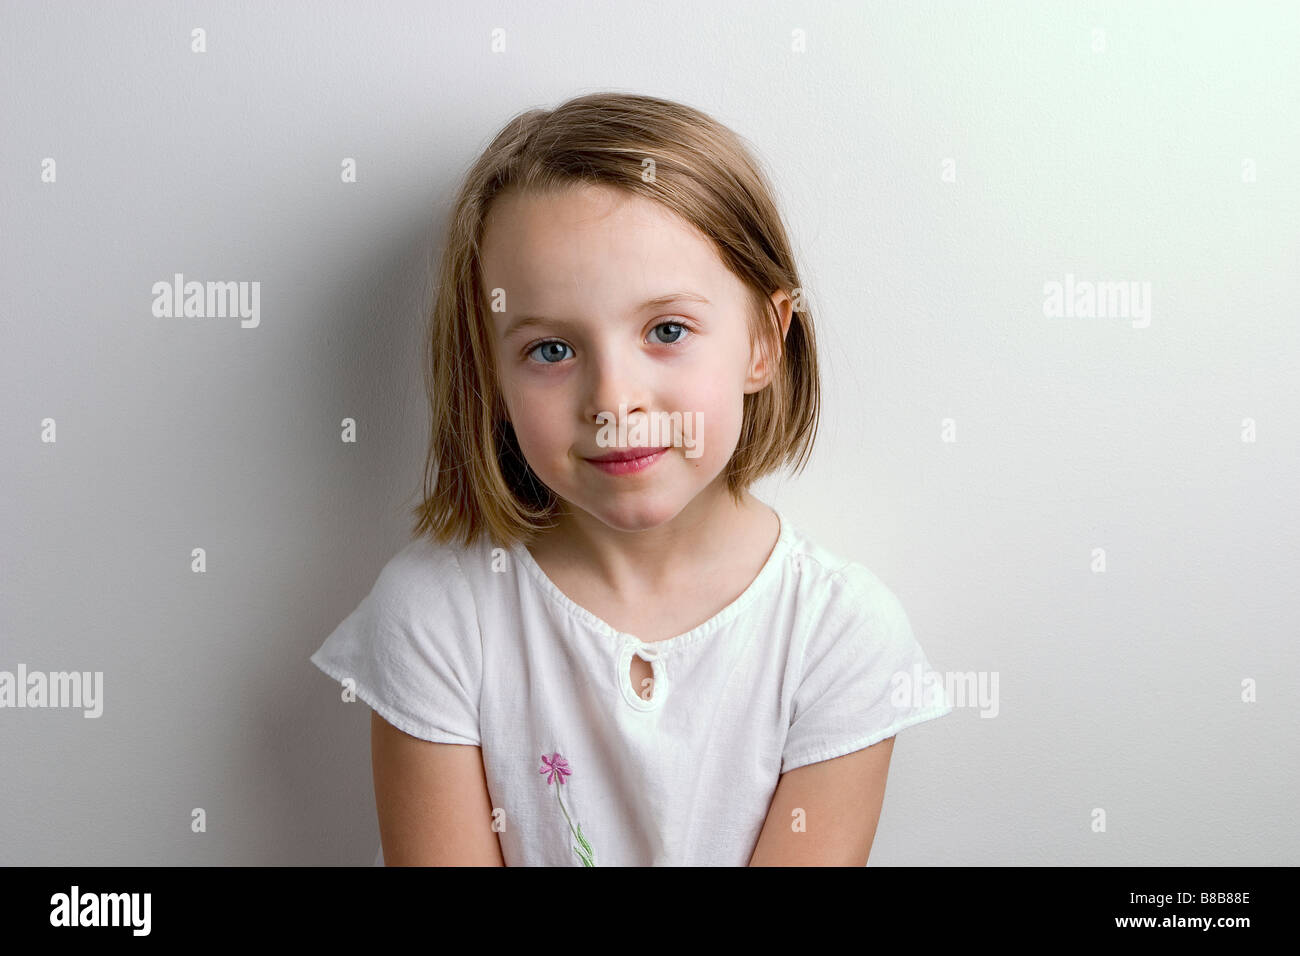 Portrait of 6 year old girl - Stock Image